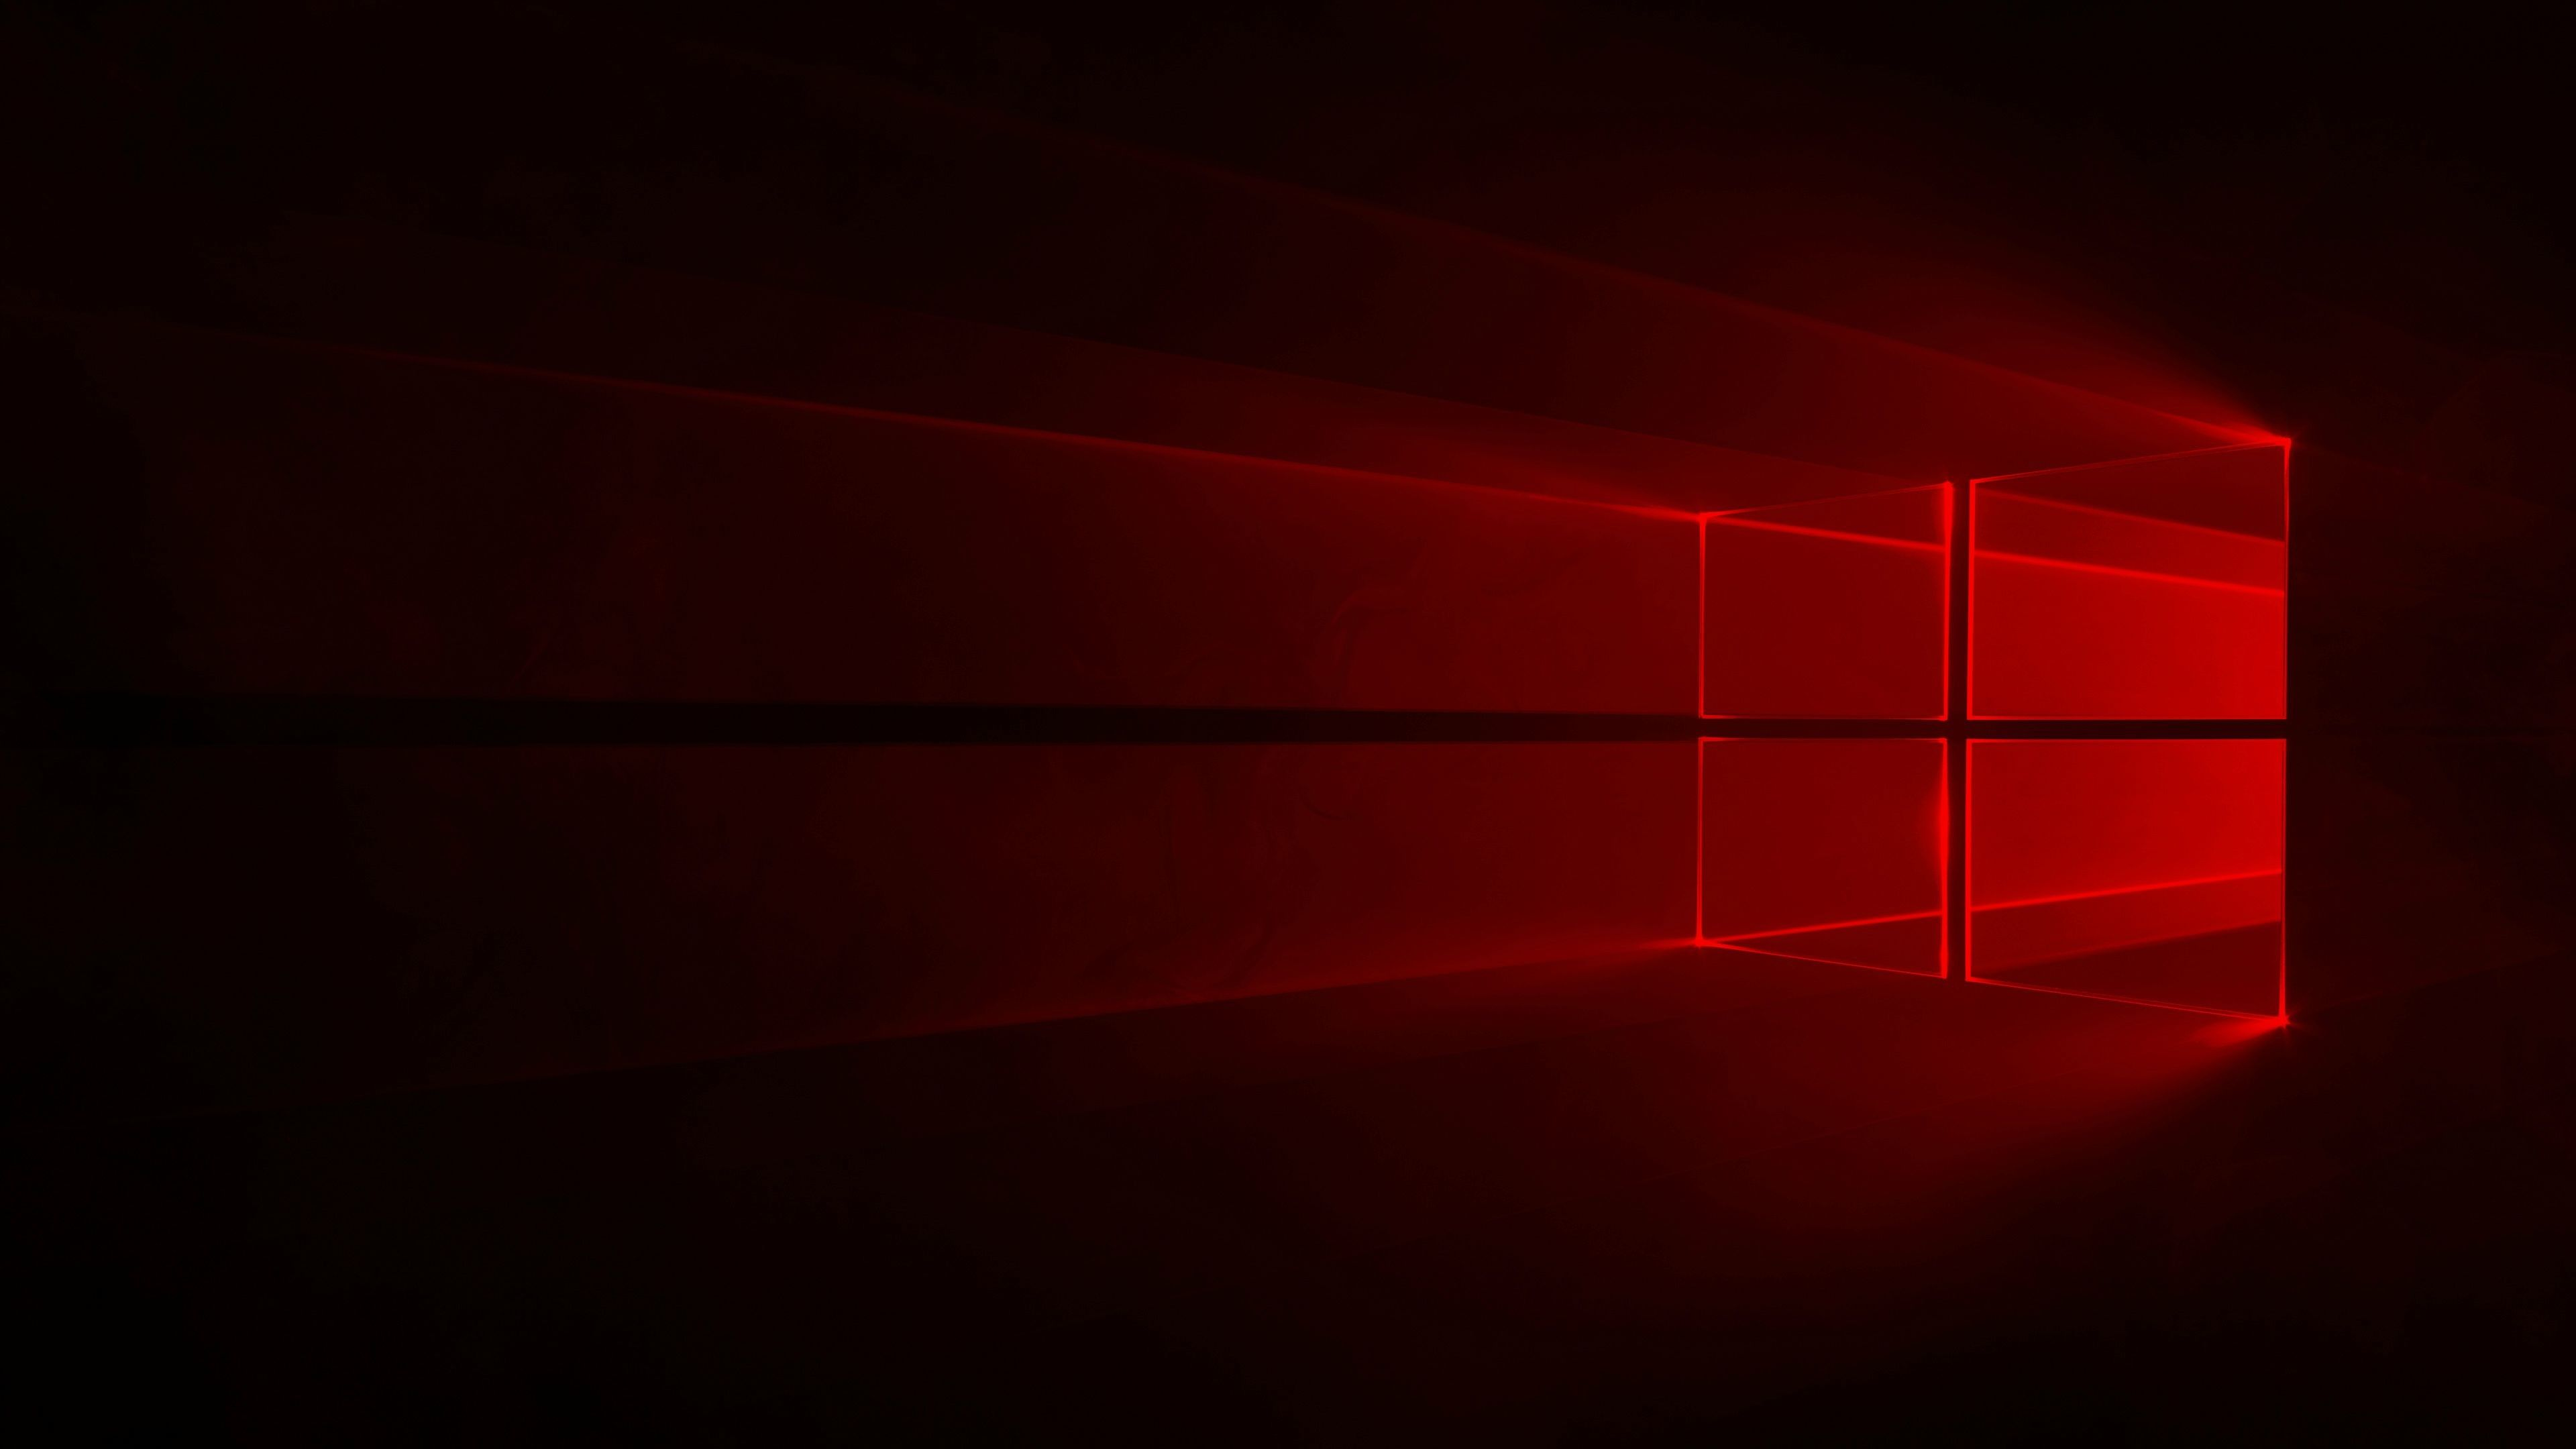 Windows 10 Red Wallpaper 4k - HD Wallpaper